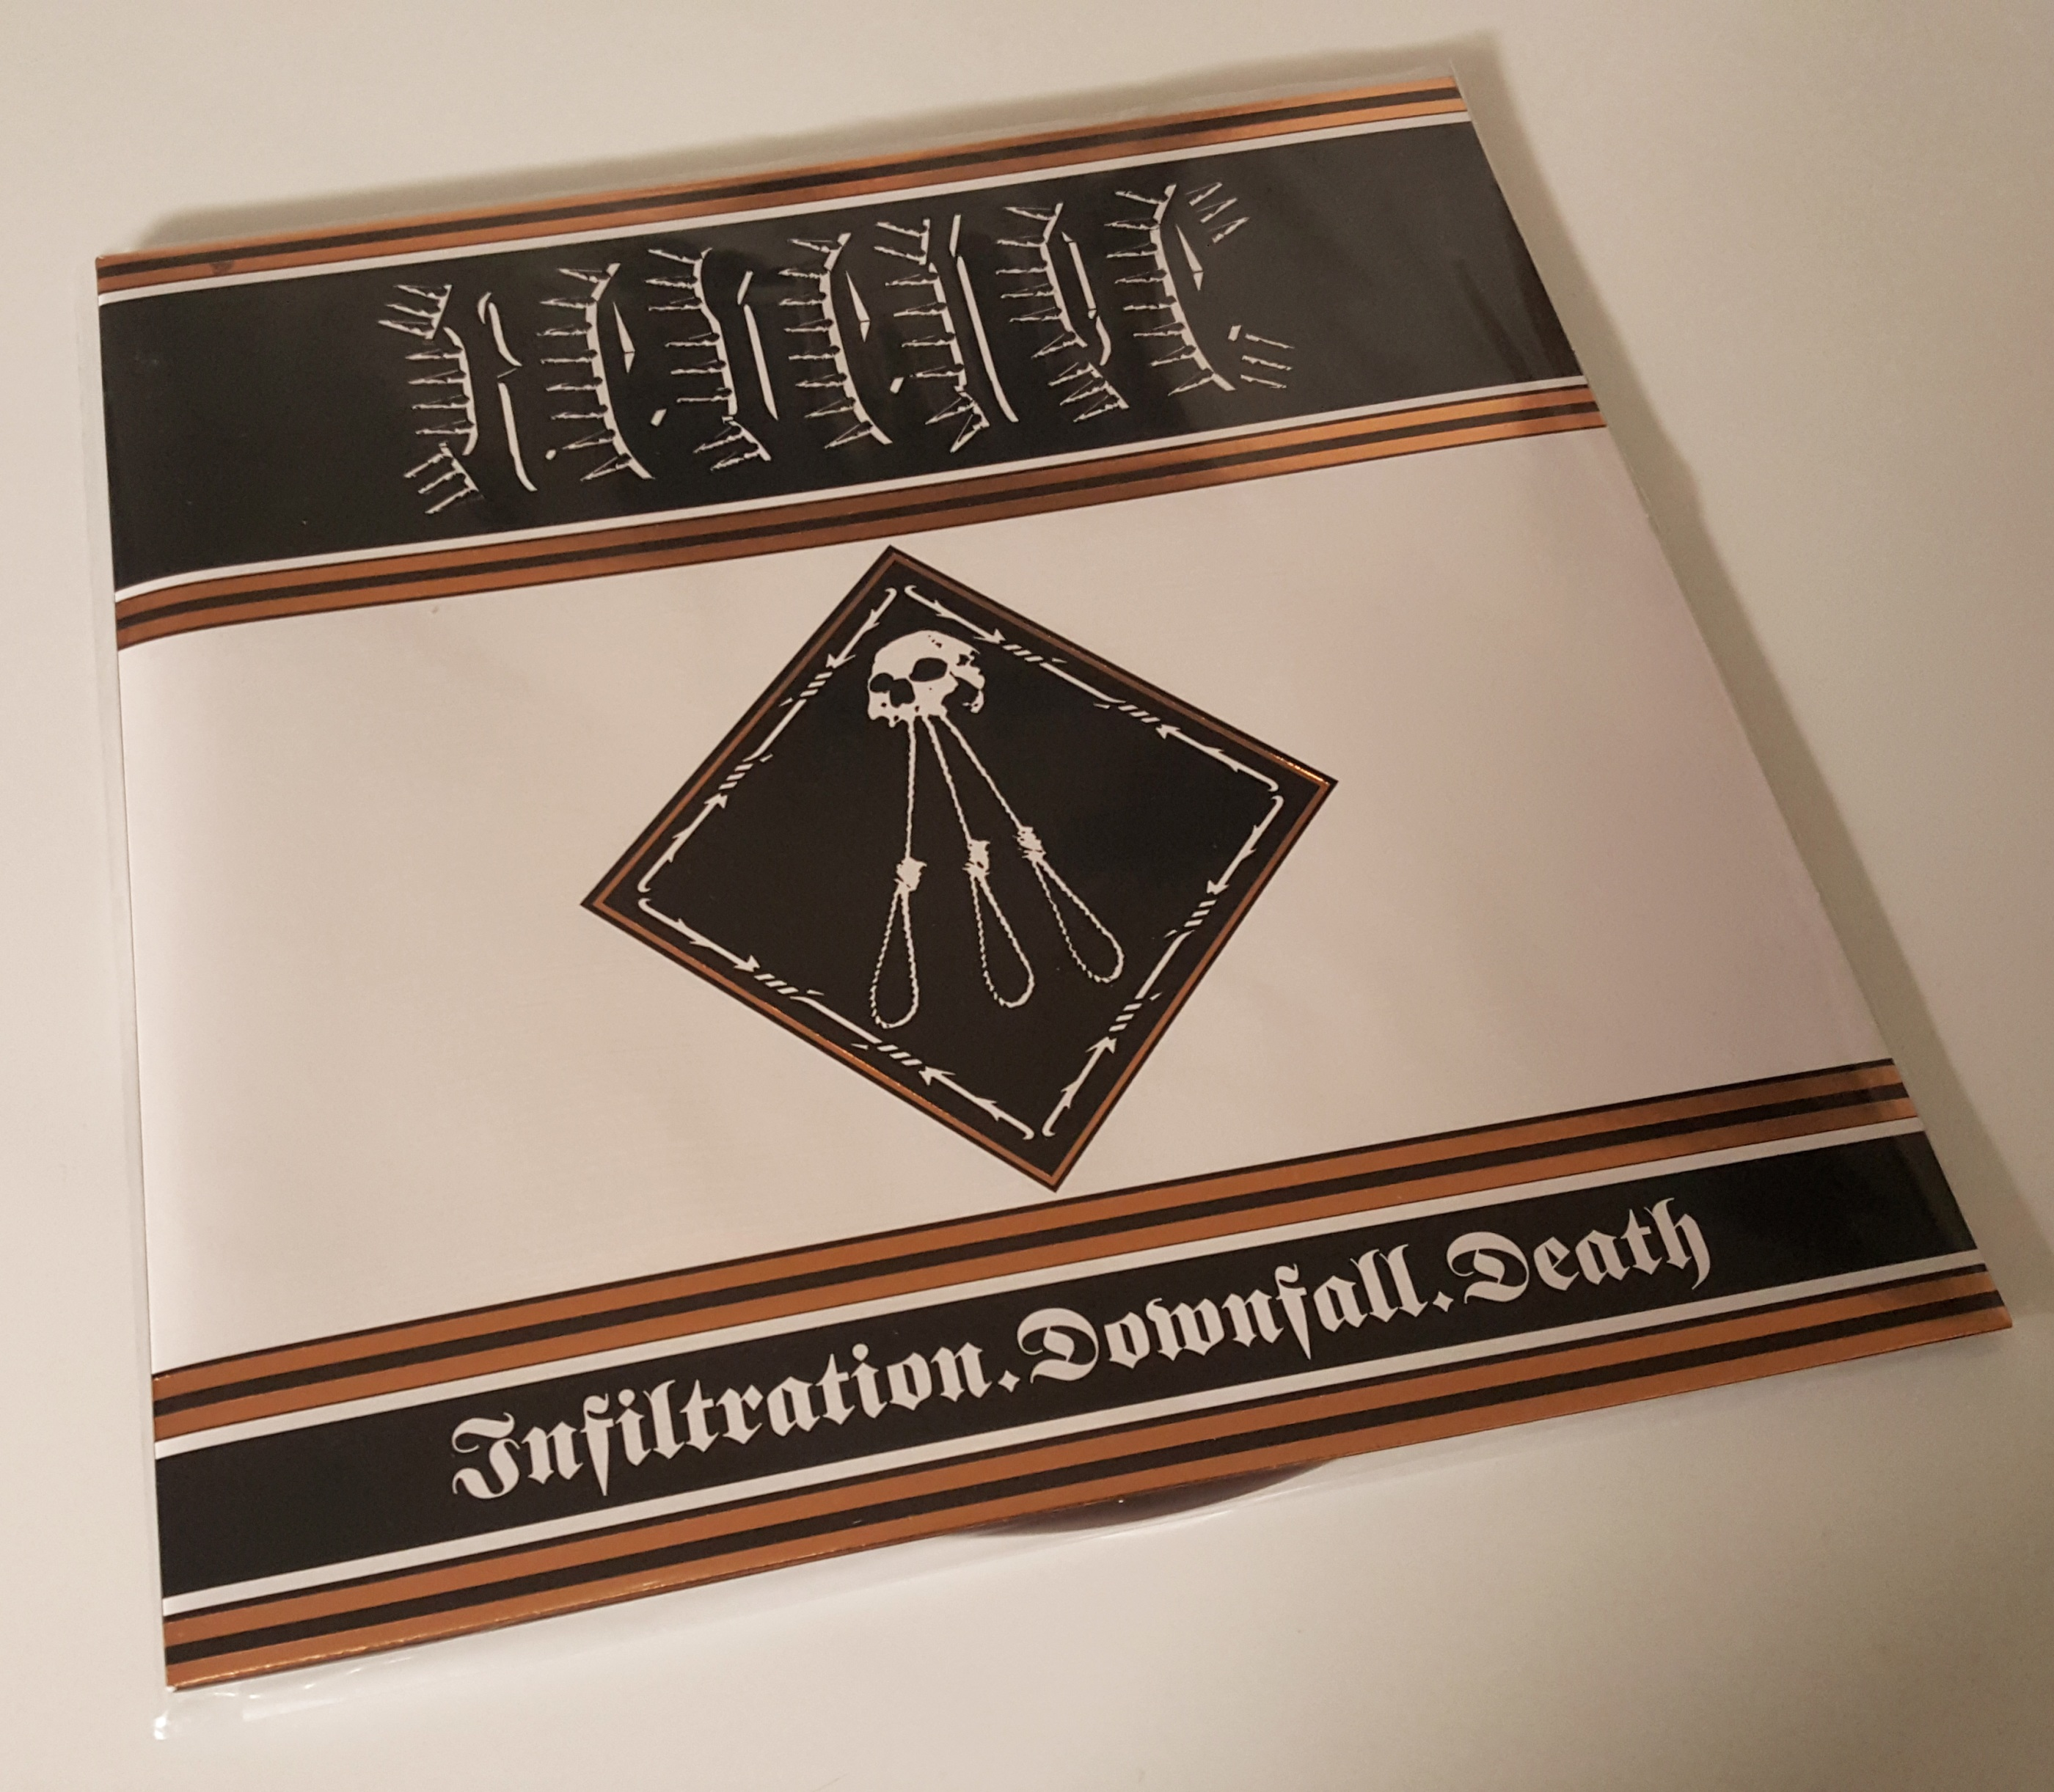 "REVENGE Infiltration. Downfall. Death 12"" LP"